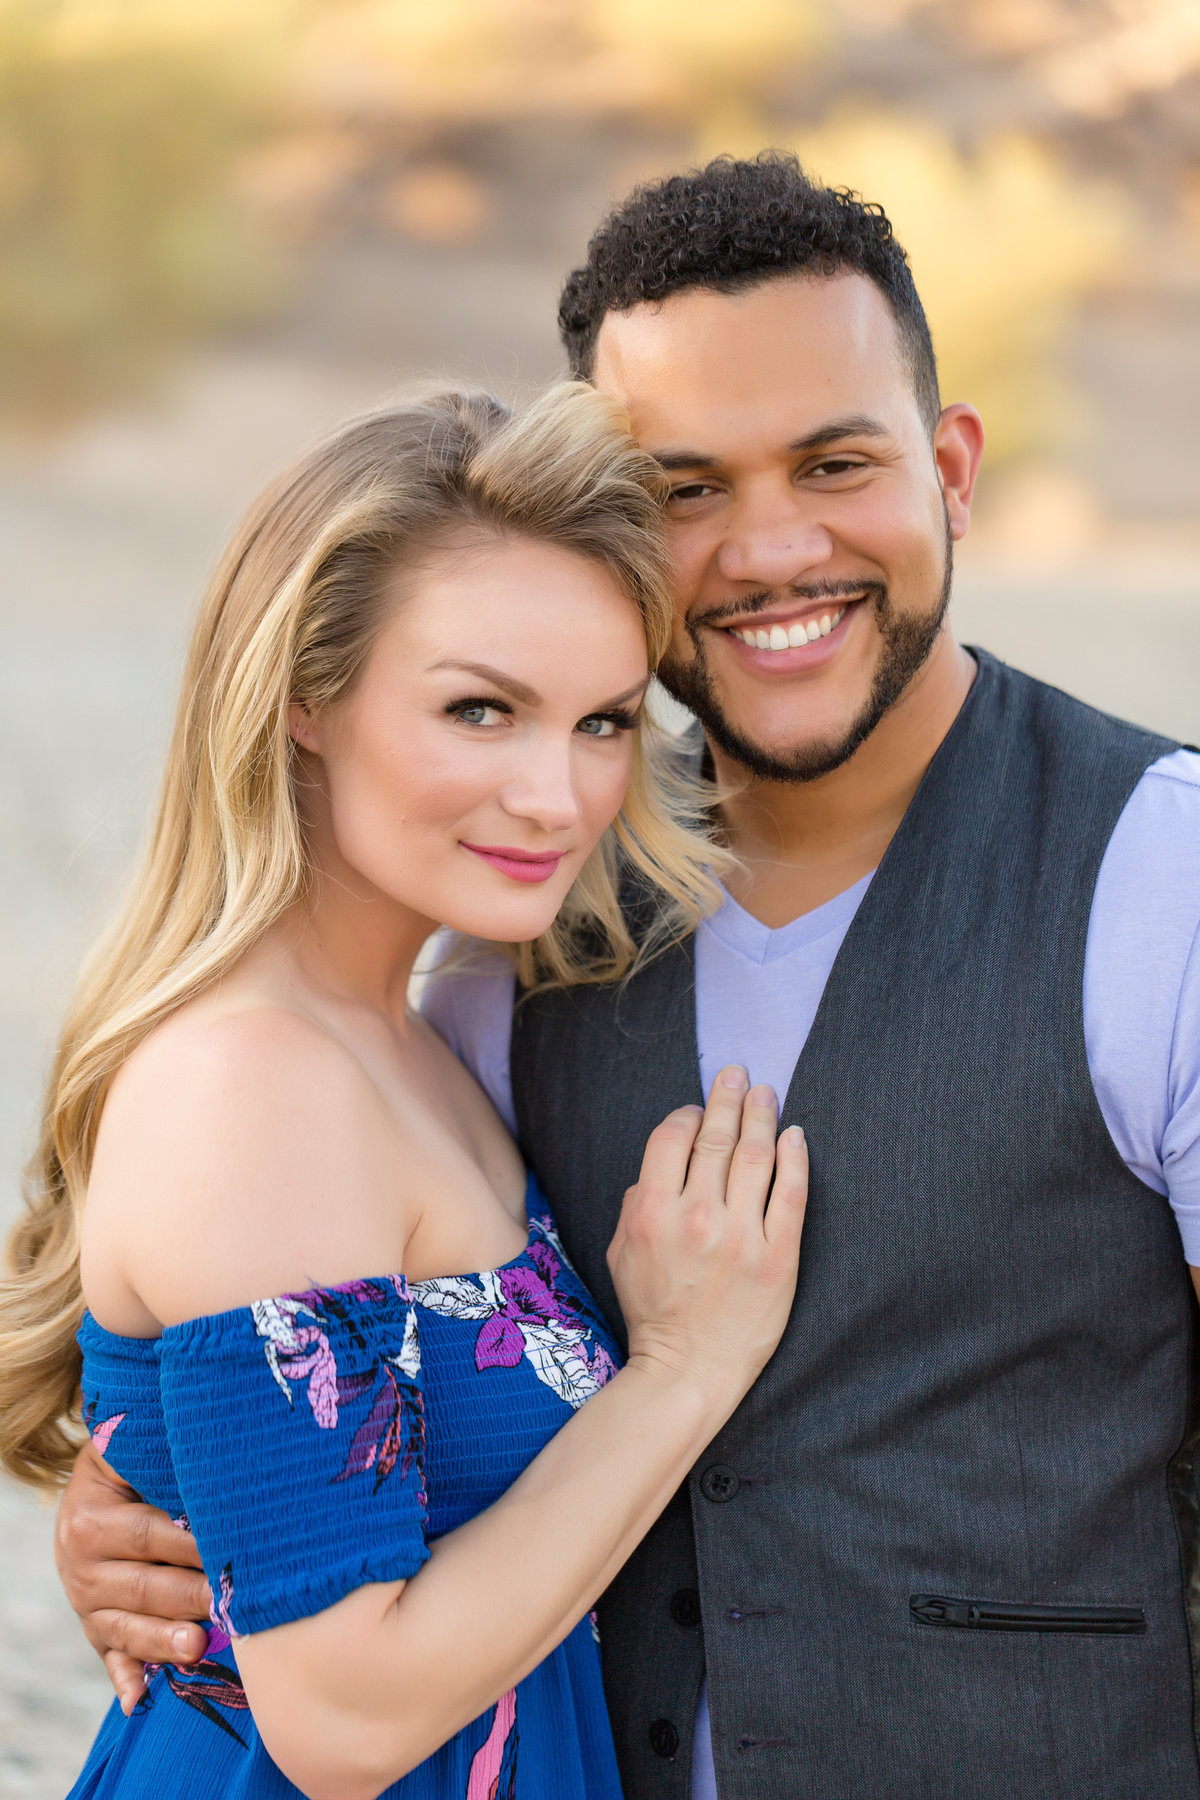 MaryBeth&Andre-134